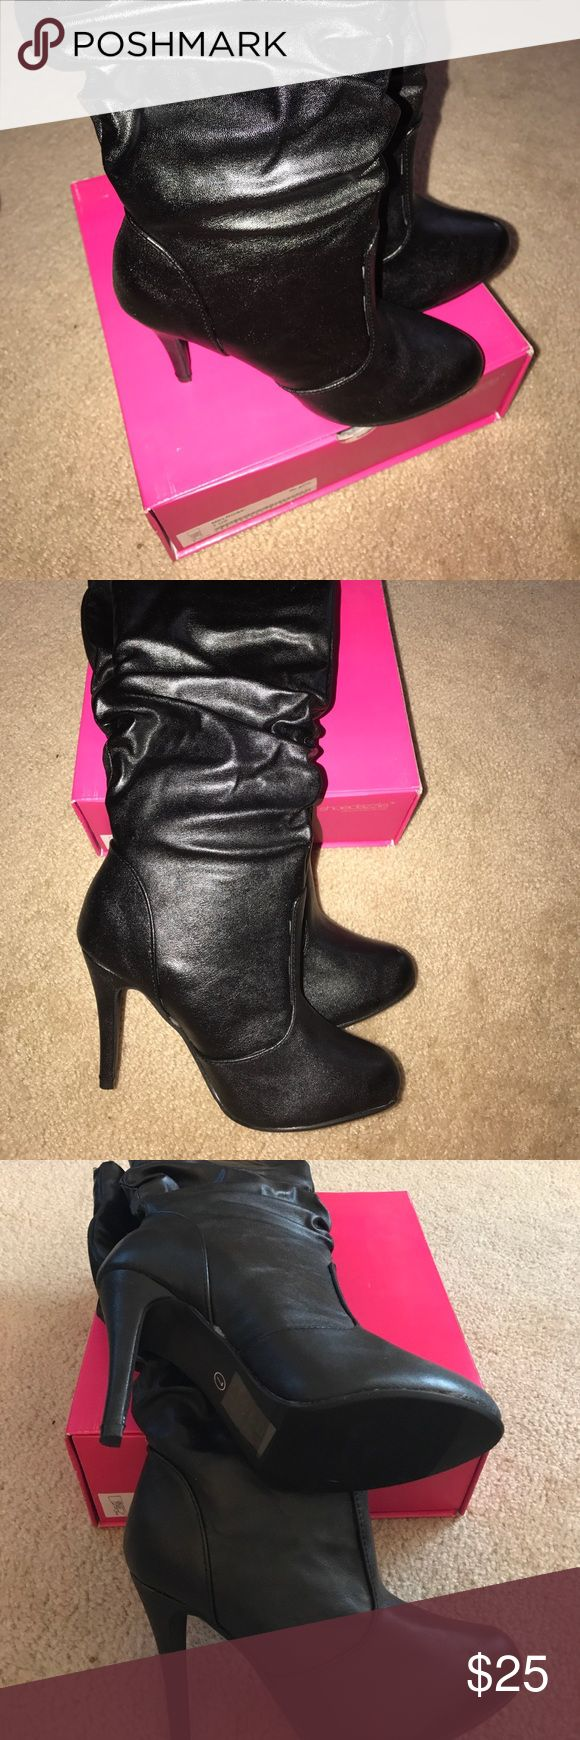 Melrose by Shoe Dazzle size 7 boots Melrose by Shoe Dazzle size 7 boots. Brand new and never worn. These boots will make a statement for a night out! Shoe Dazzle Shoes Heeled Boots